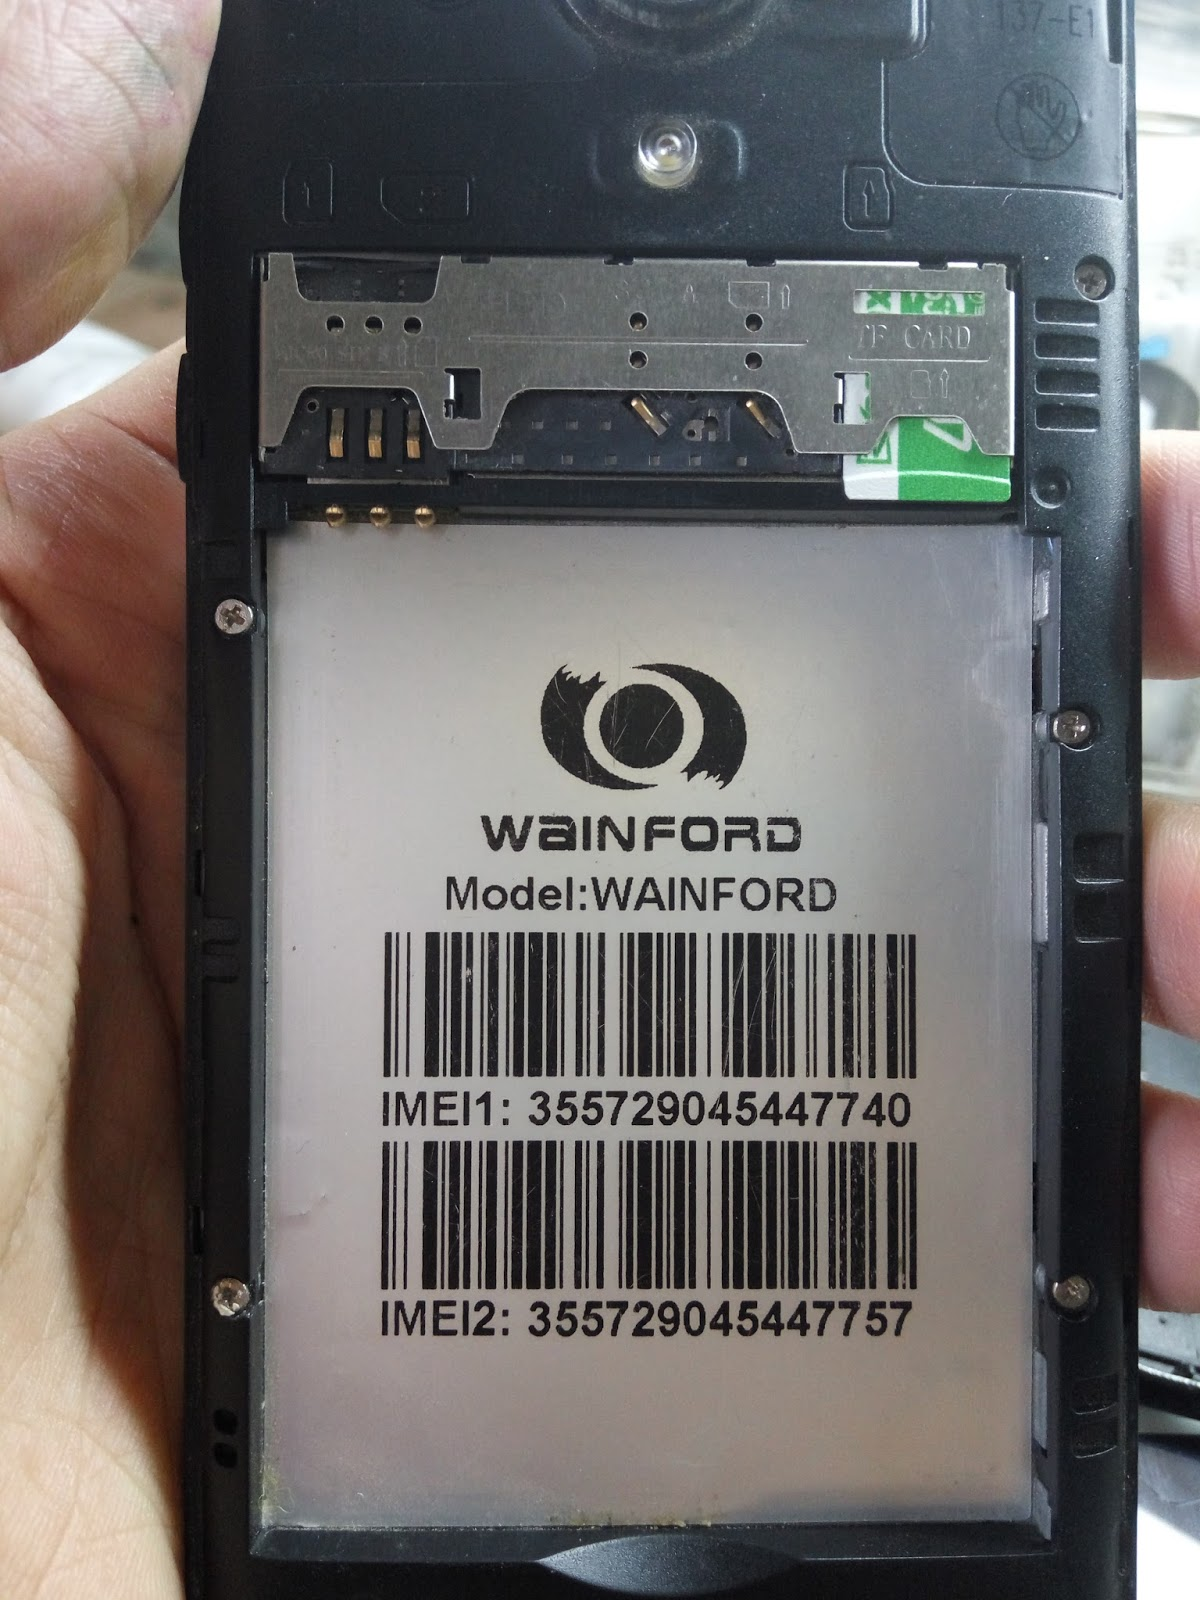 wainford firmware